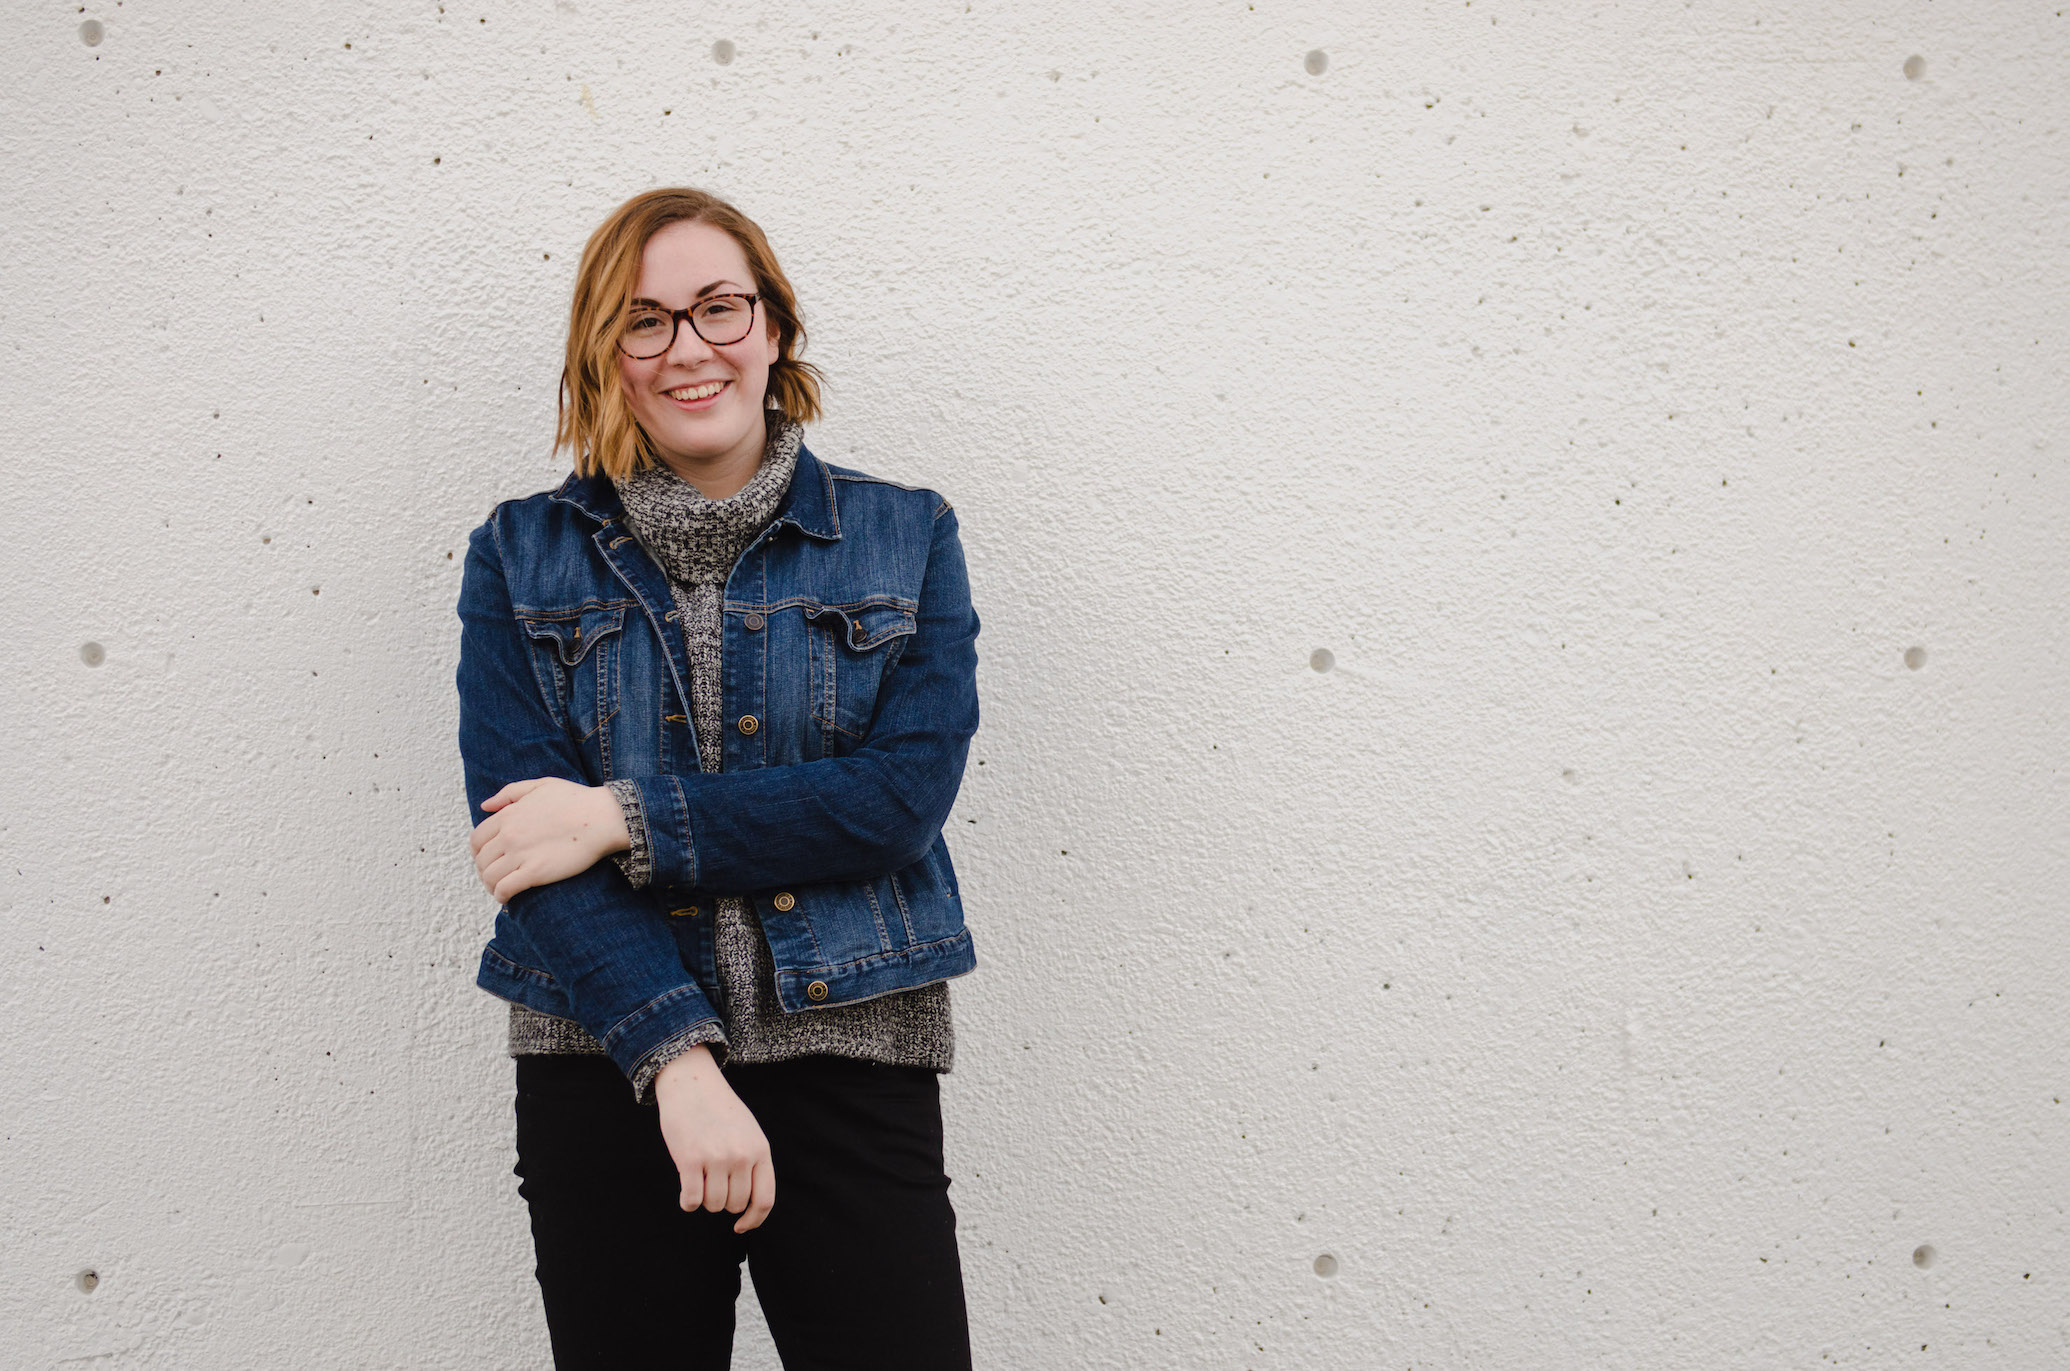 Jean jacket and knit grey turtleneck // A Week Of Thrifted & Ethical Outfits With Emilie Maine On The Good Trade